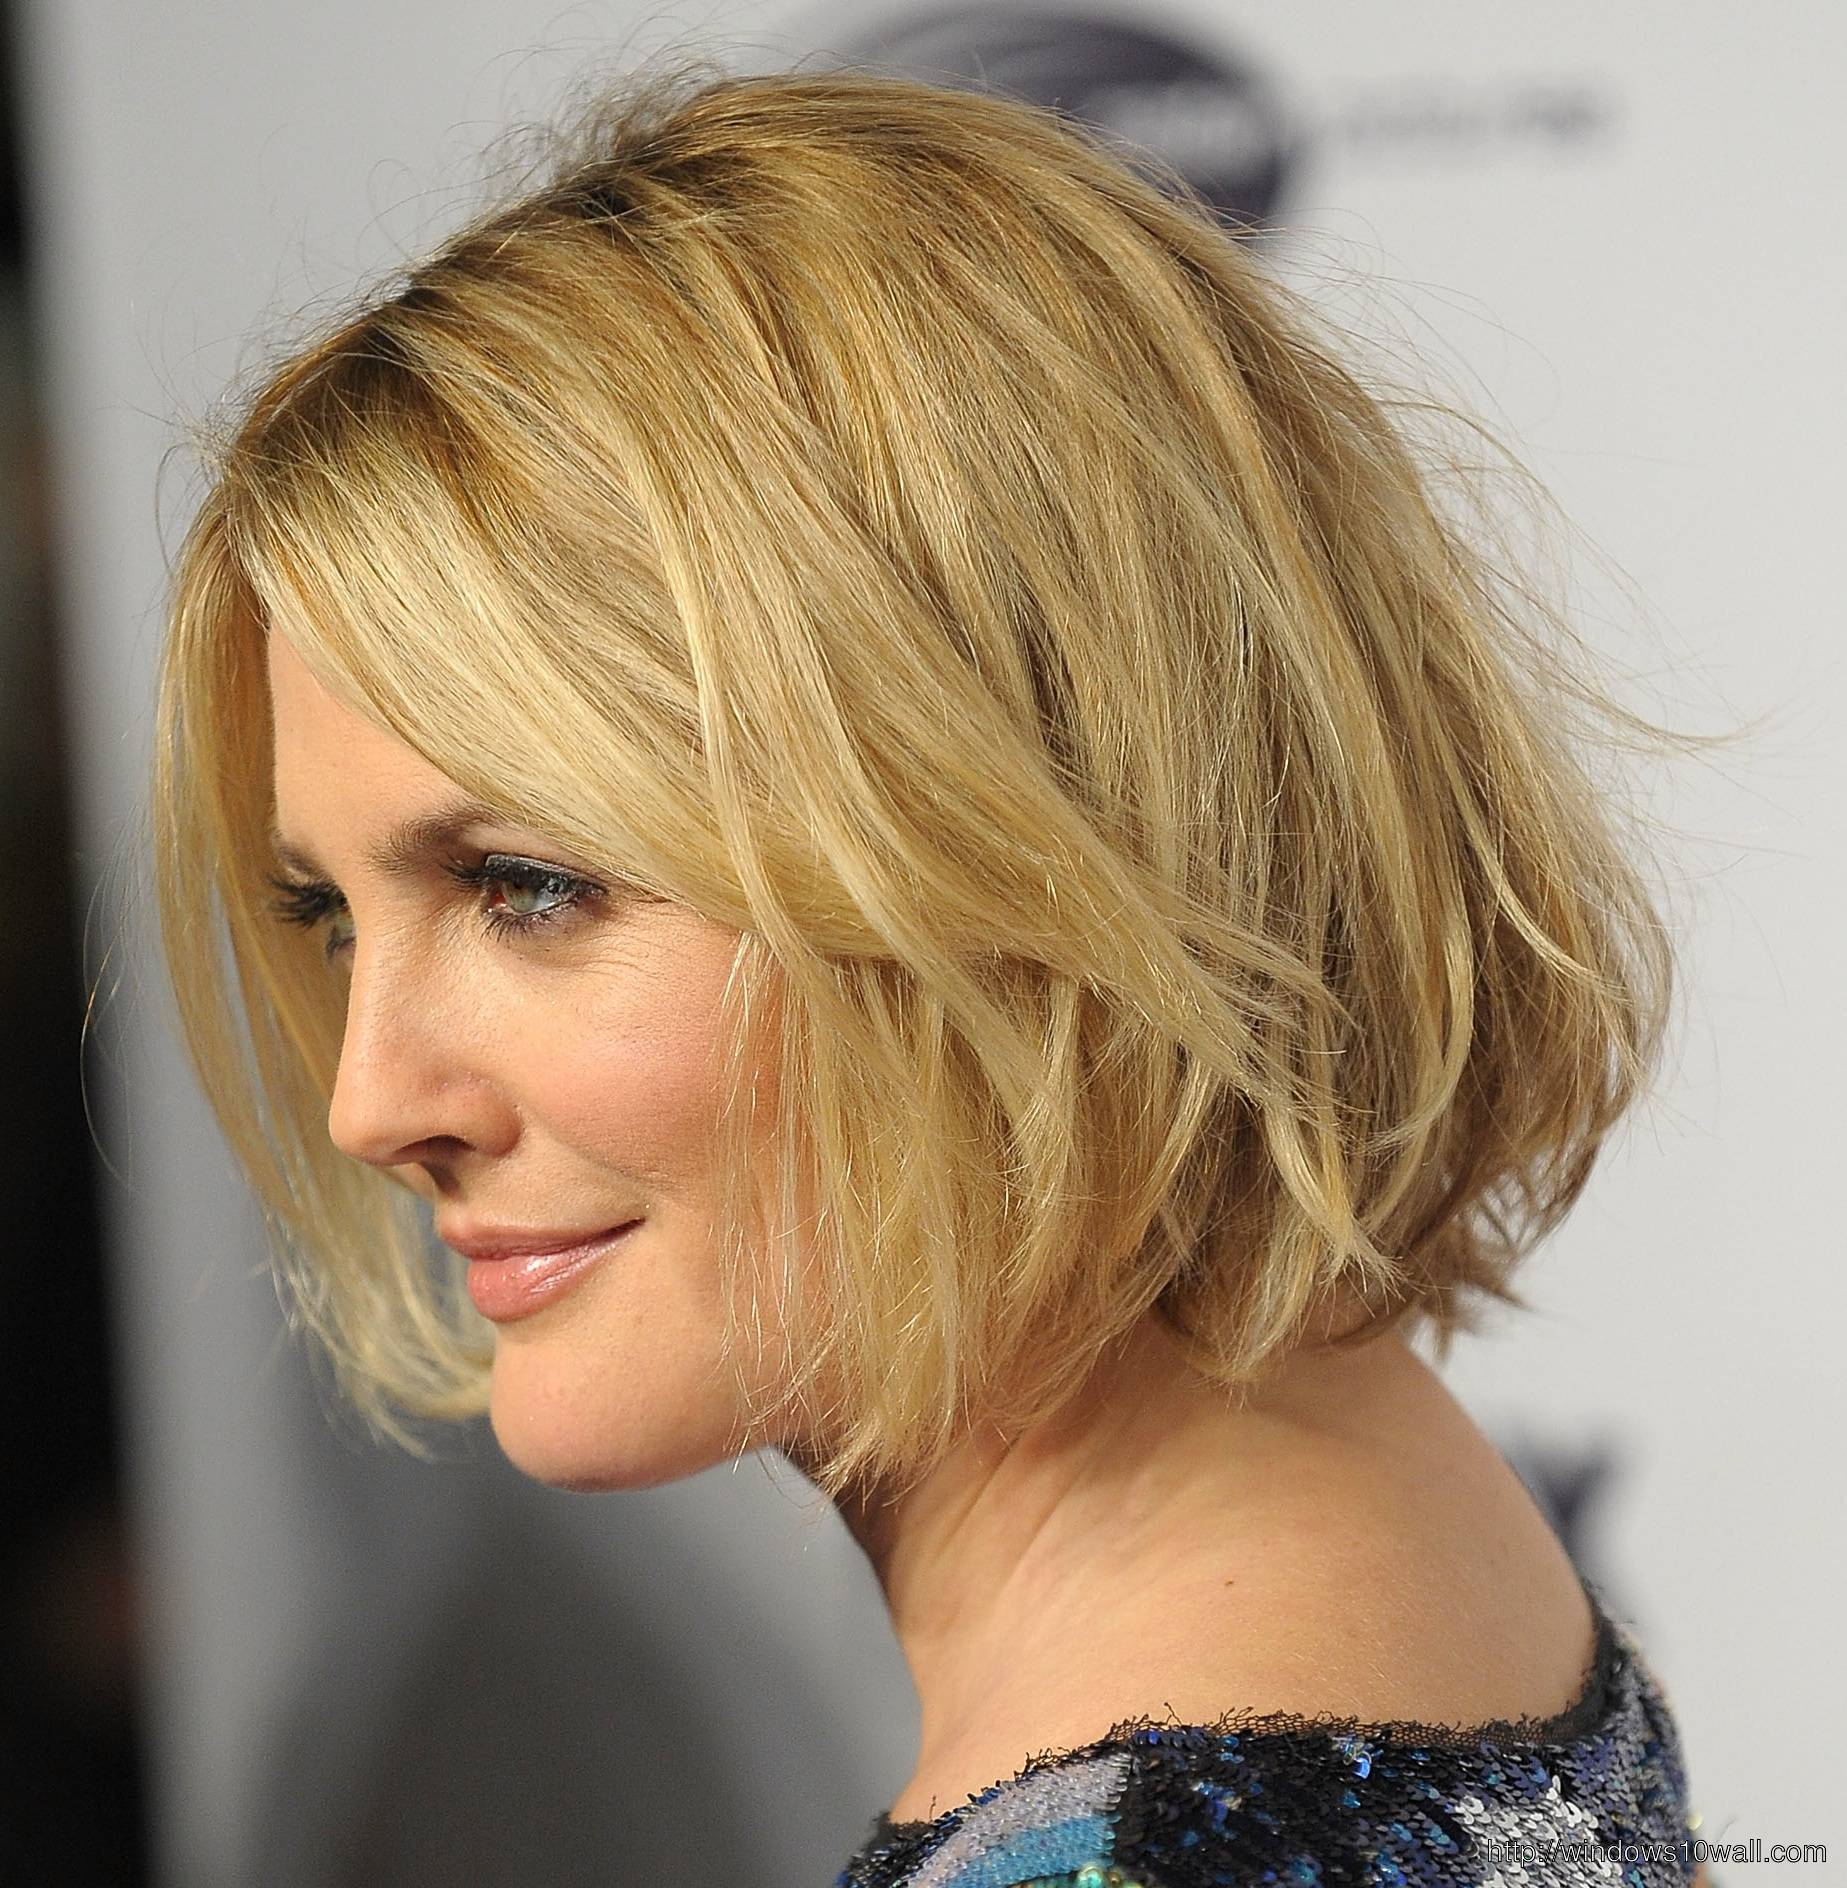 Short Hairstyles for Women in Celebrity Style Wallpaper